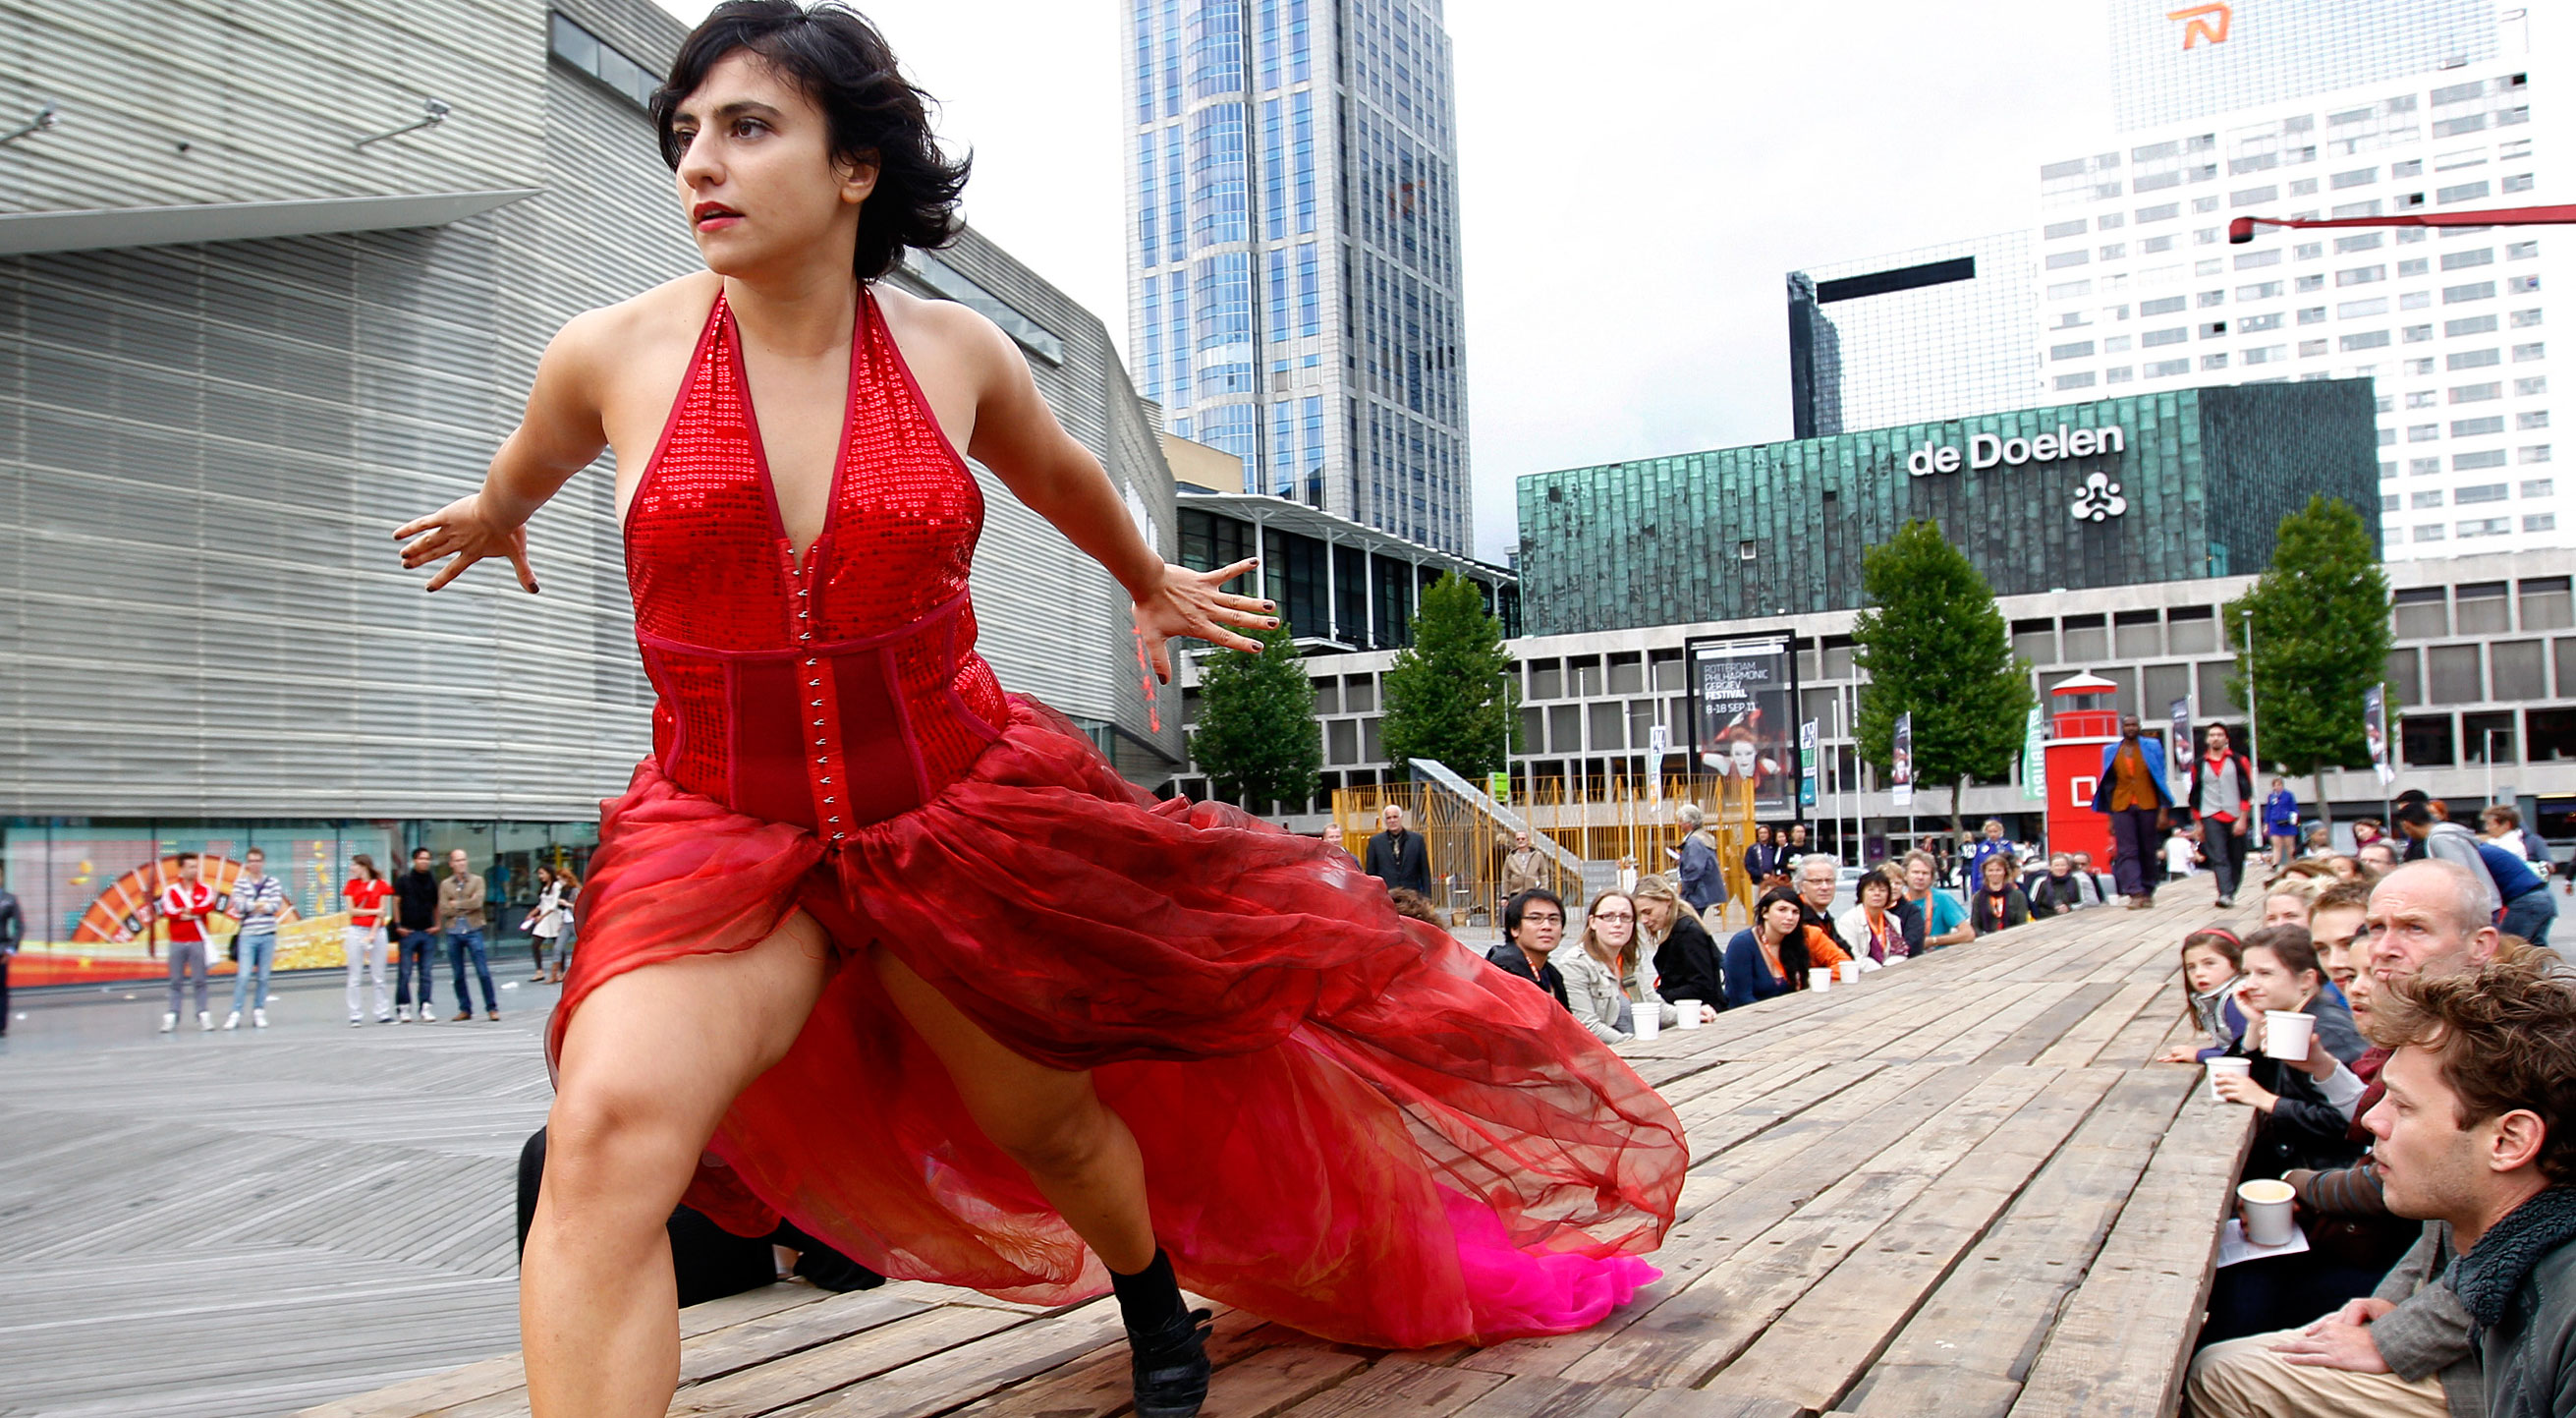 Rotterdam city of culture will buzz with activity this autumn